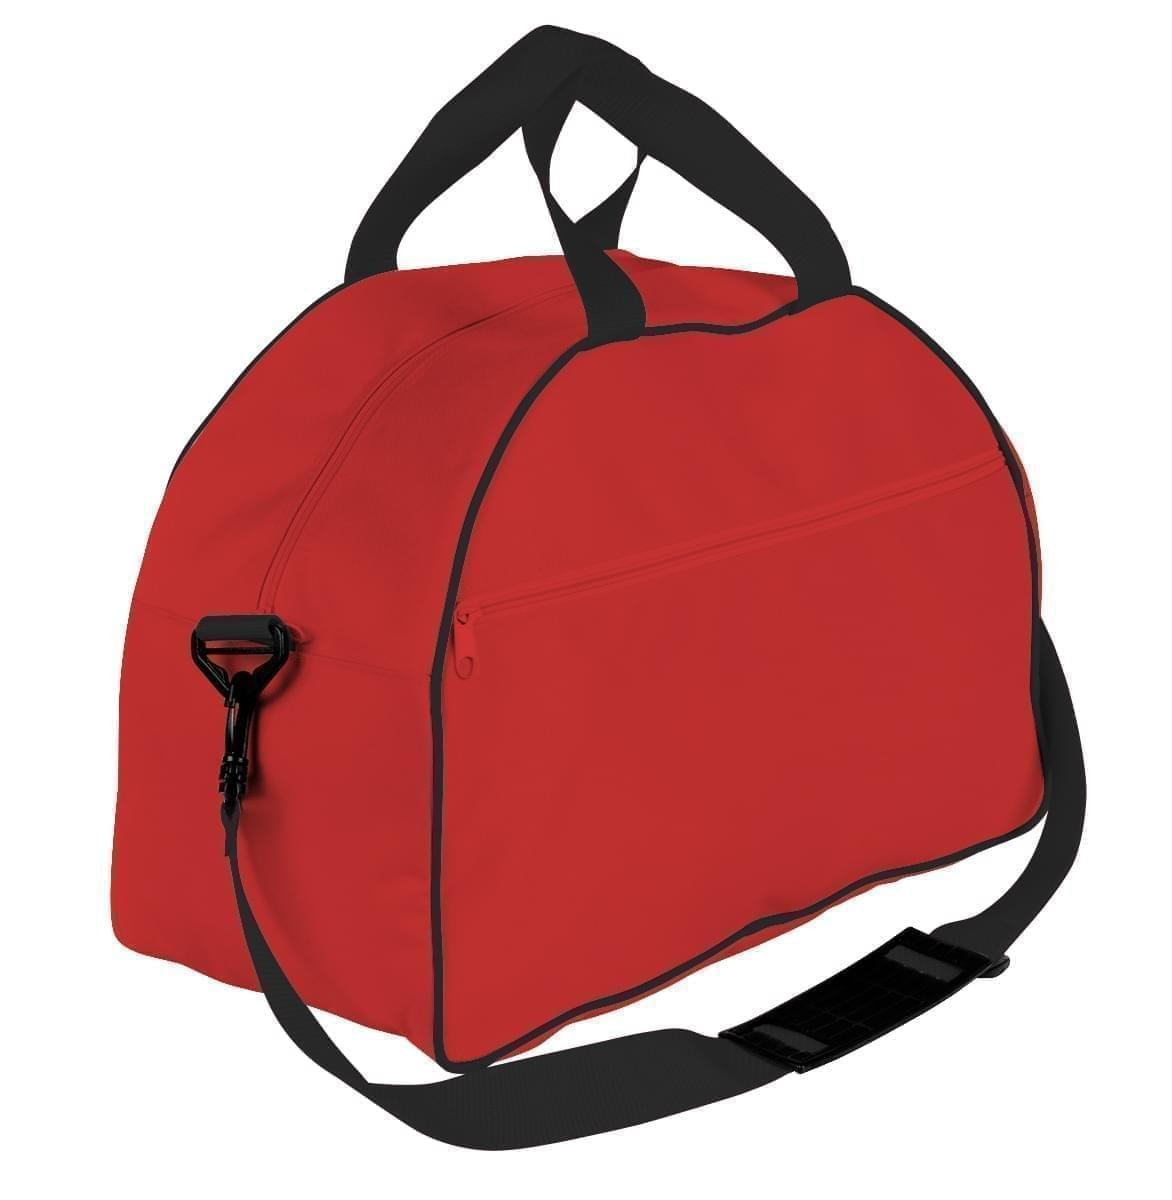 USA Made Nylon Poly Weekender Duffel Bags, Red-Black, 6PKV32JAZR